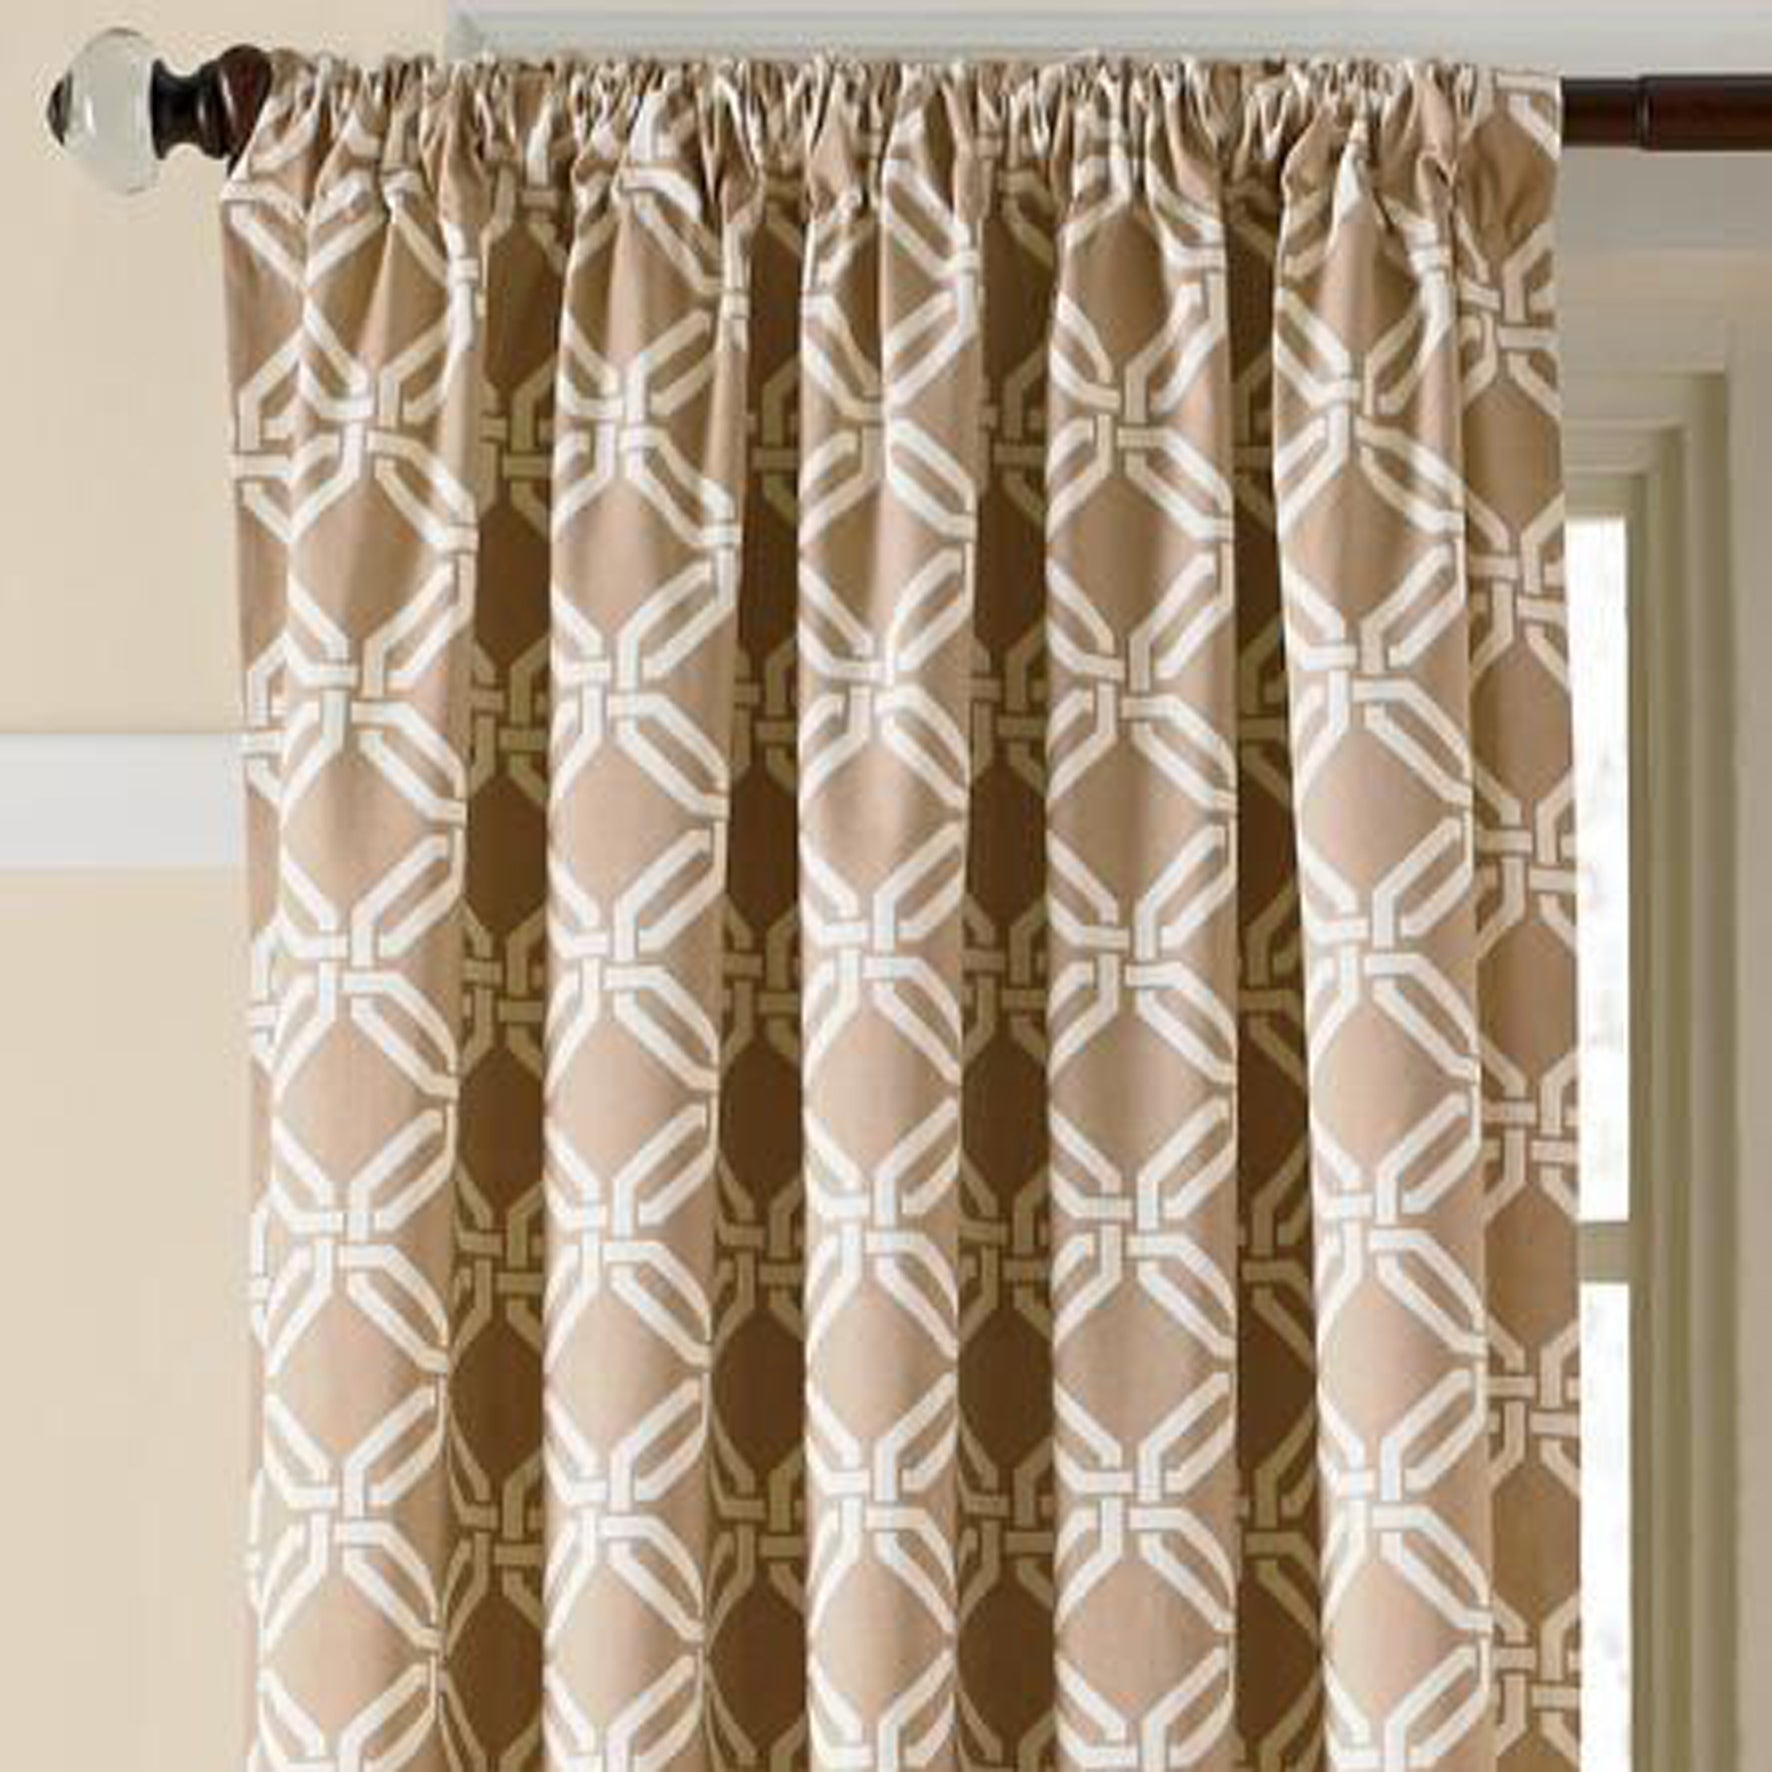 From Custom Pinch Pleat Drapes to Grommet Curtains: Find Your ...